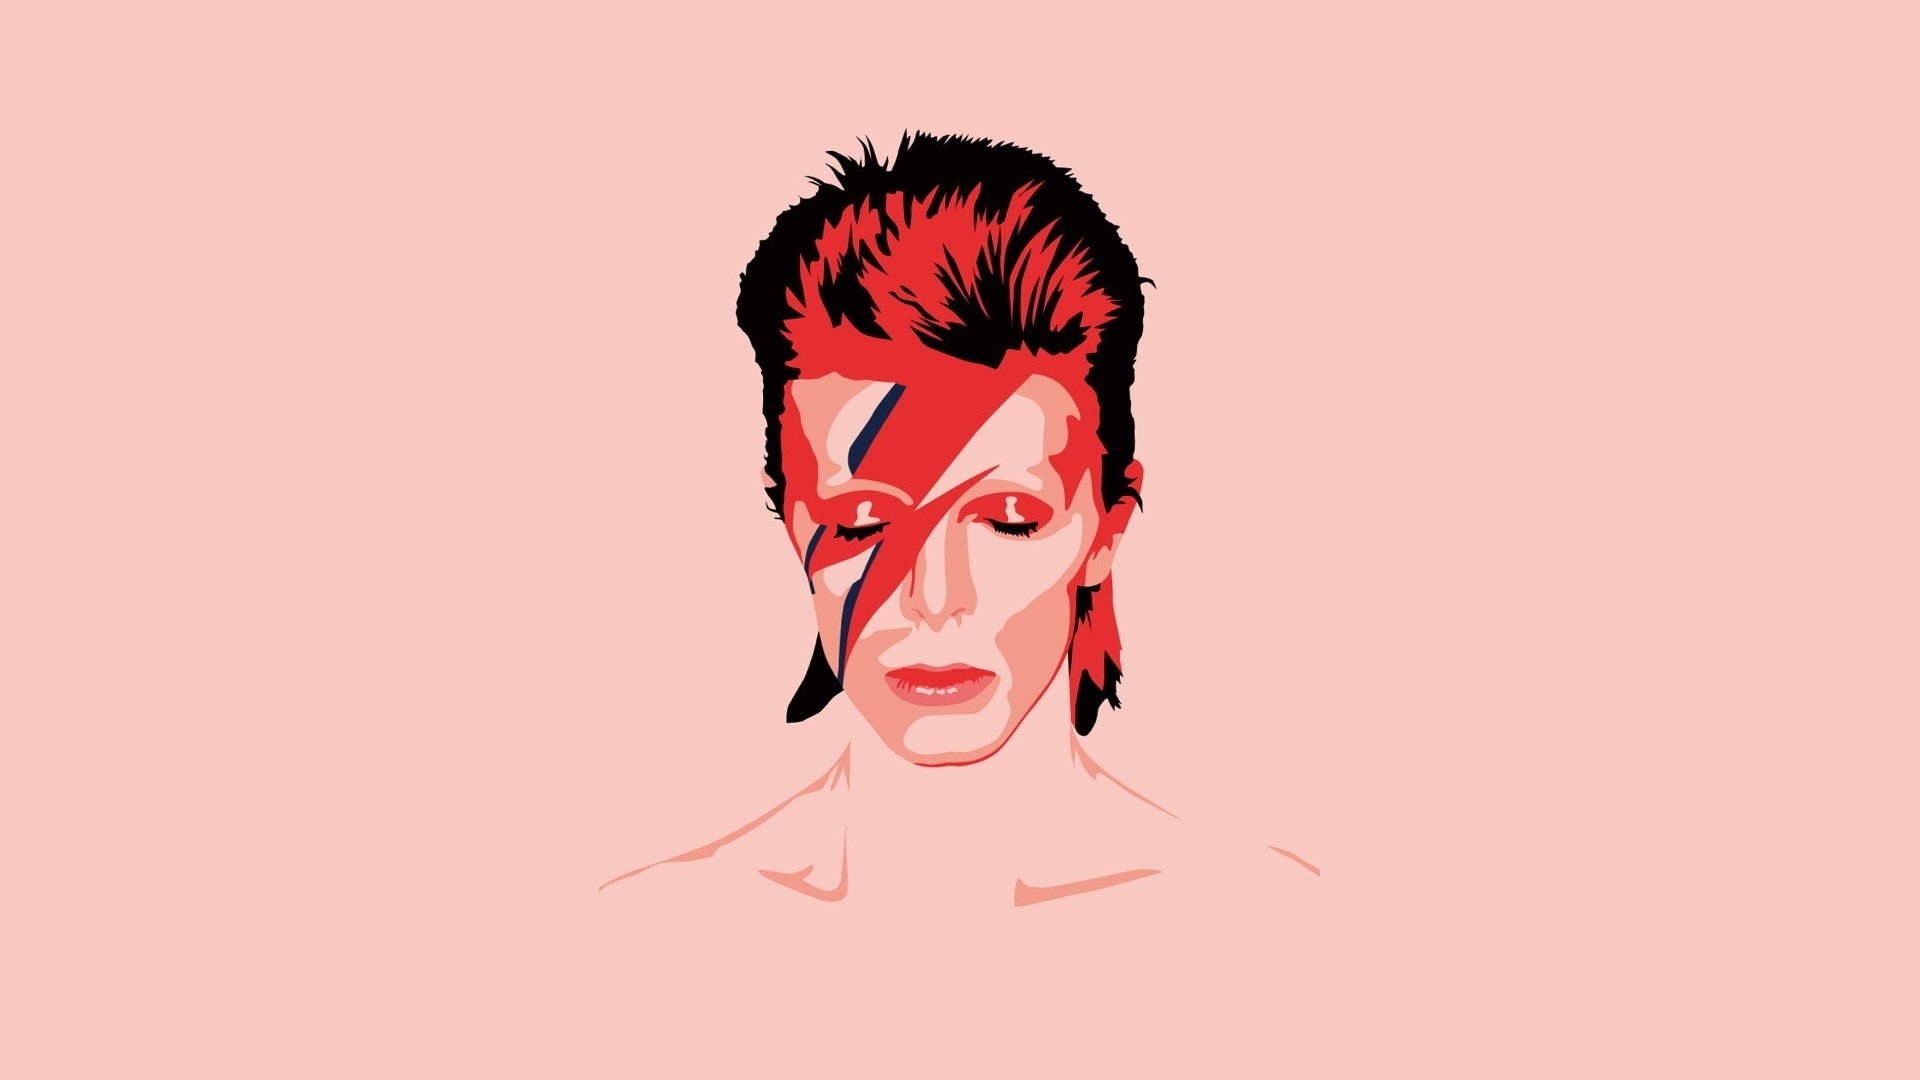 david bowie wallpaper ·① download free amazing high resolution